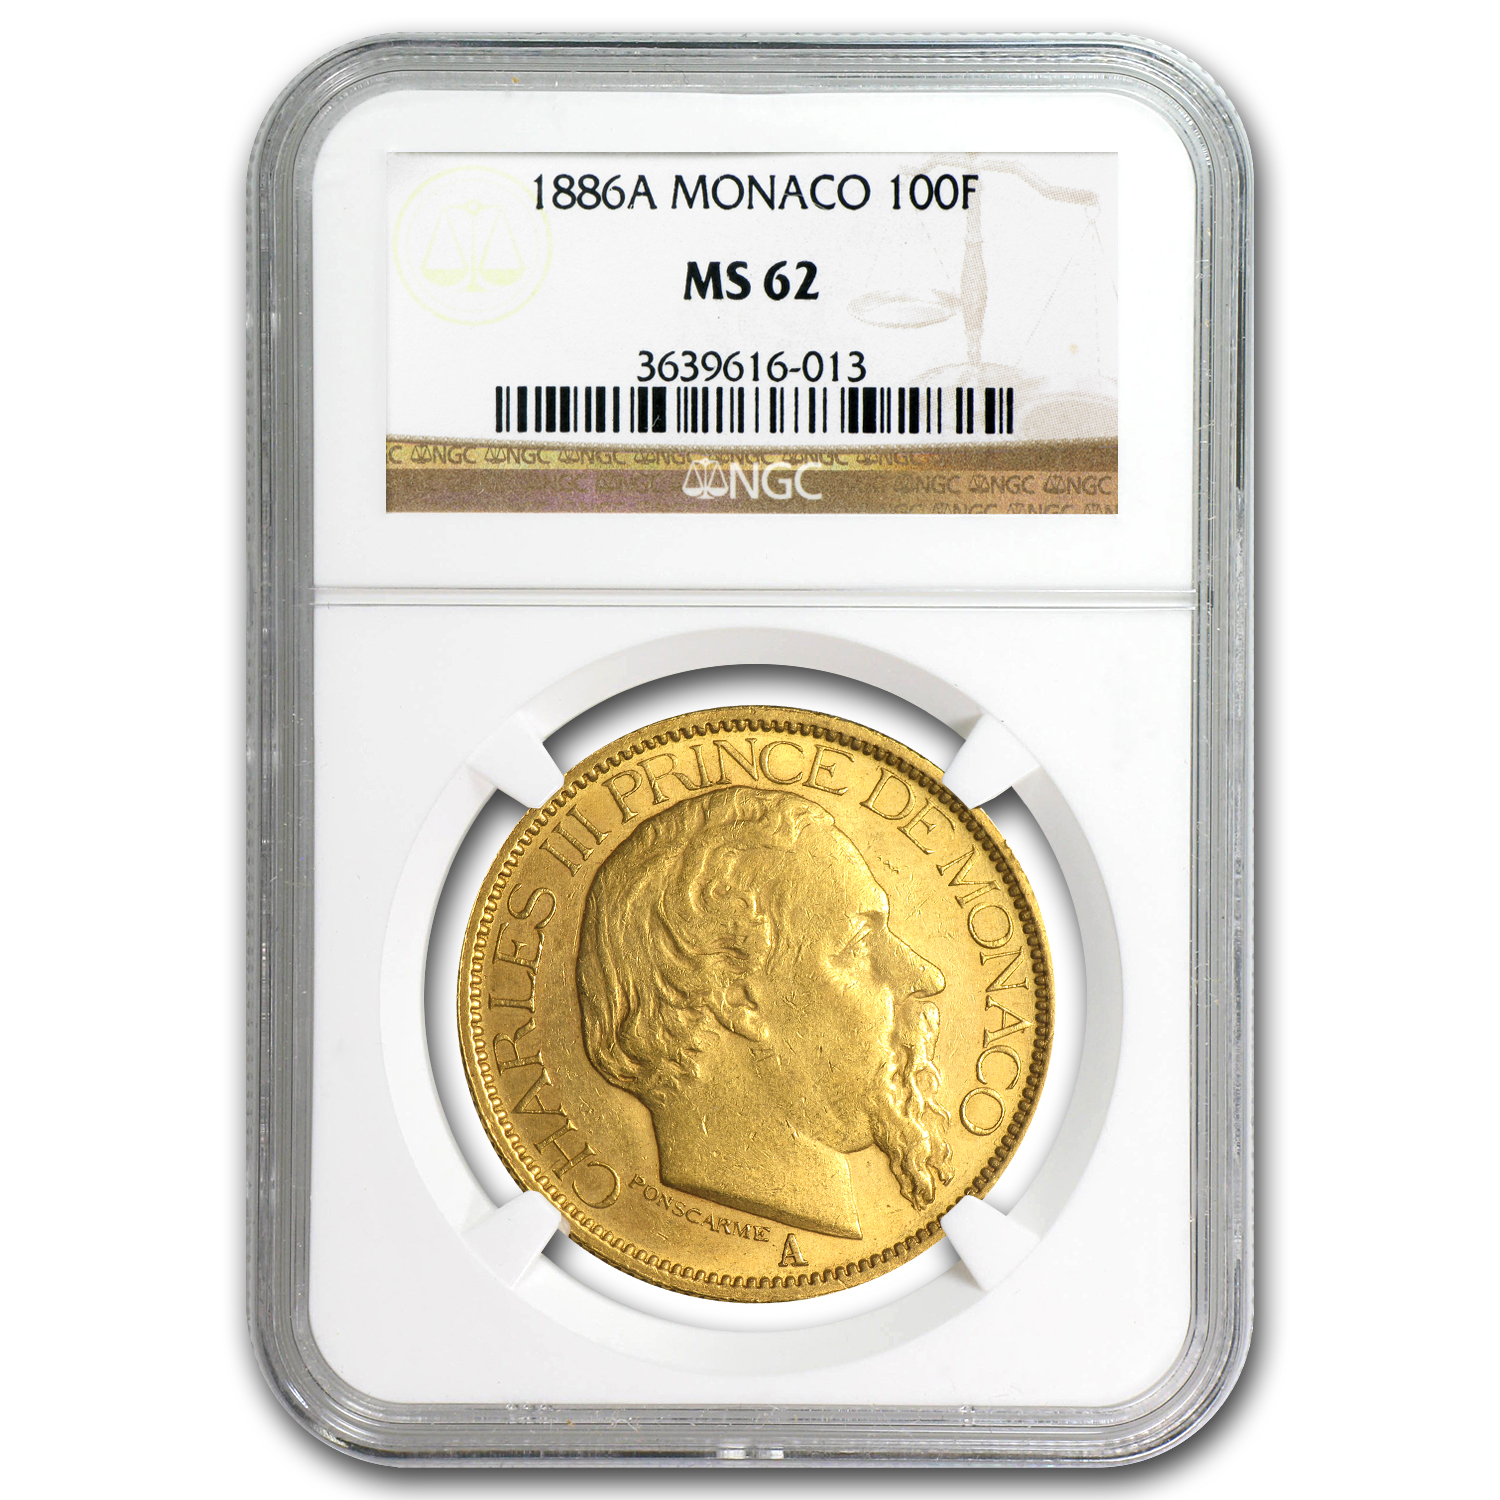 1886-A Monaco Gold 100 Francs Charles III MS-62 NGC